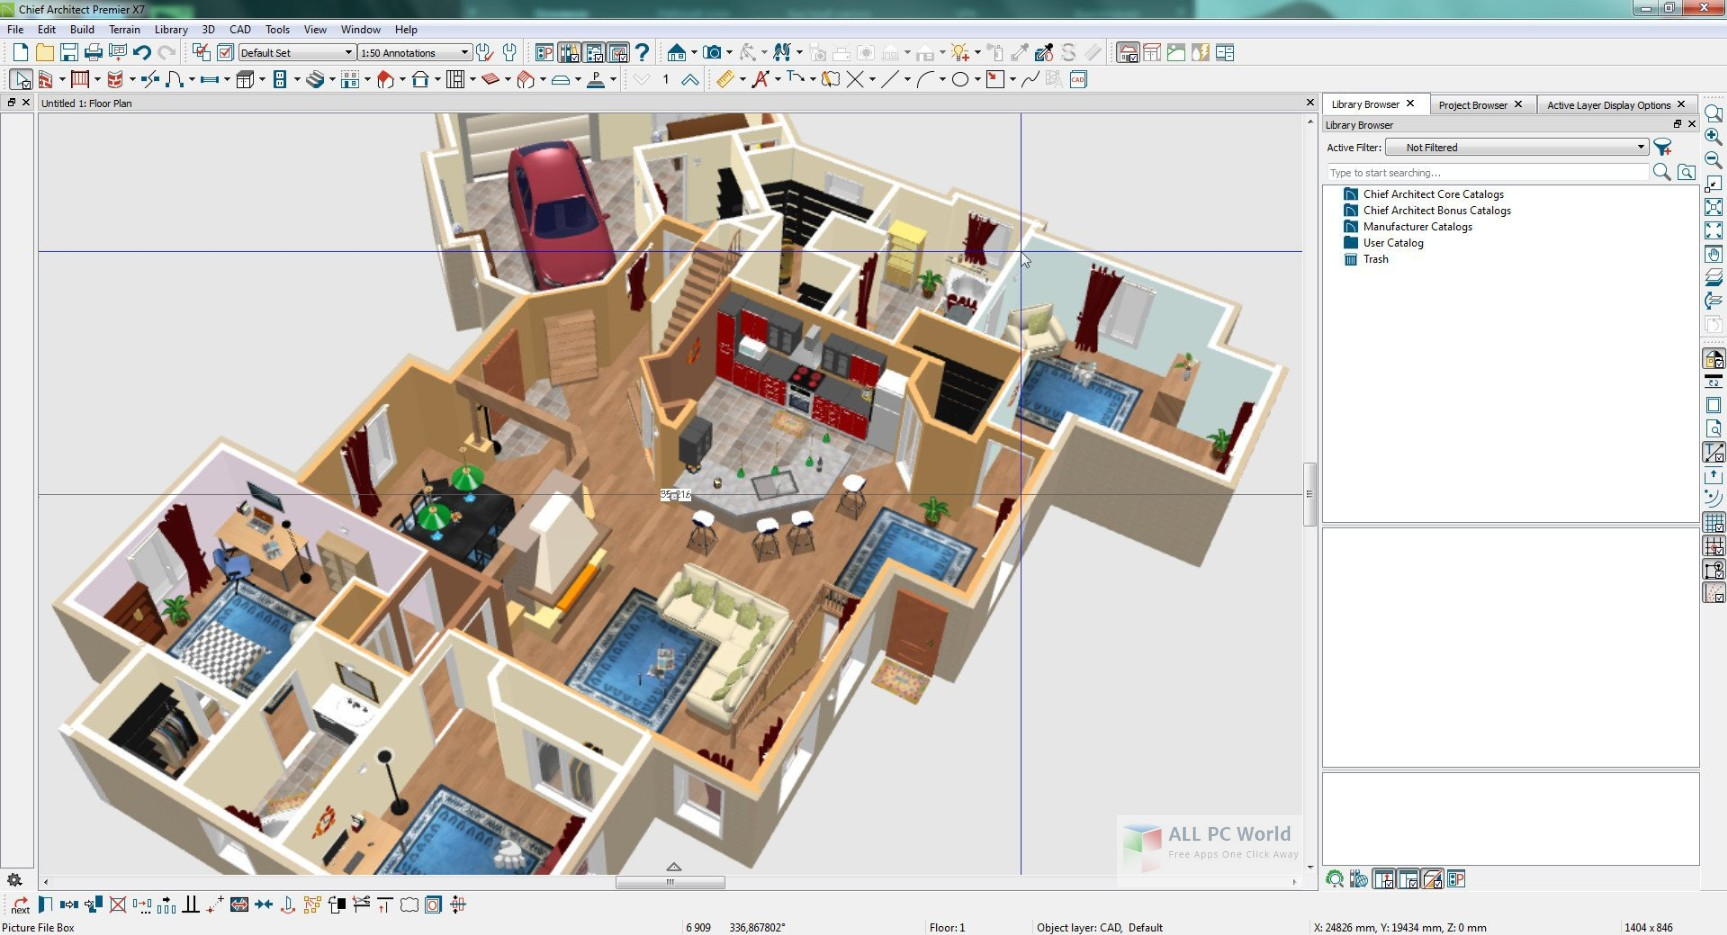 home designer suite chief architect home designer professional 2019 v20 3 free download all pc world 457